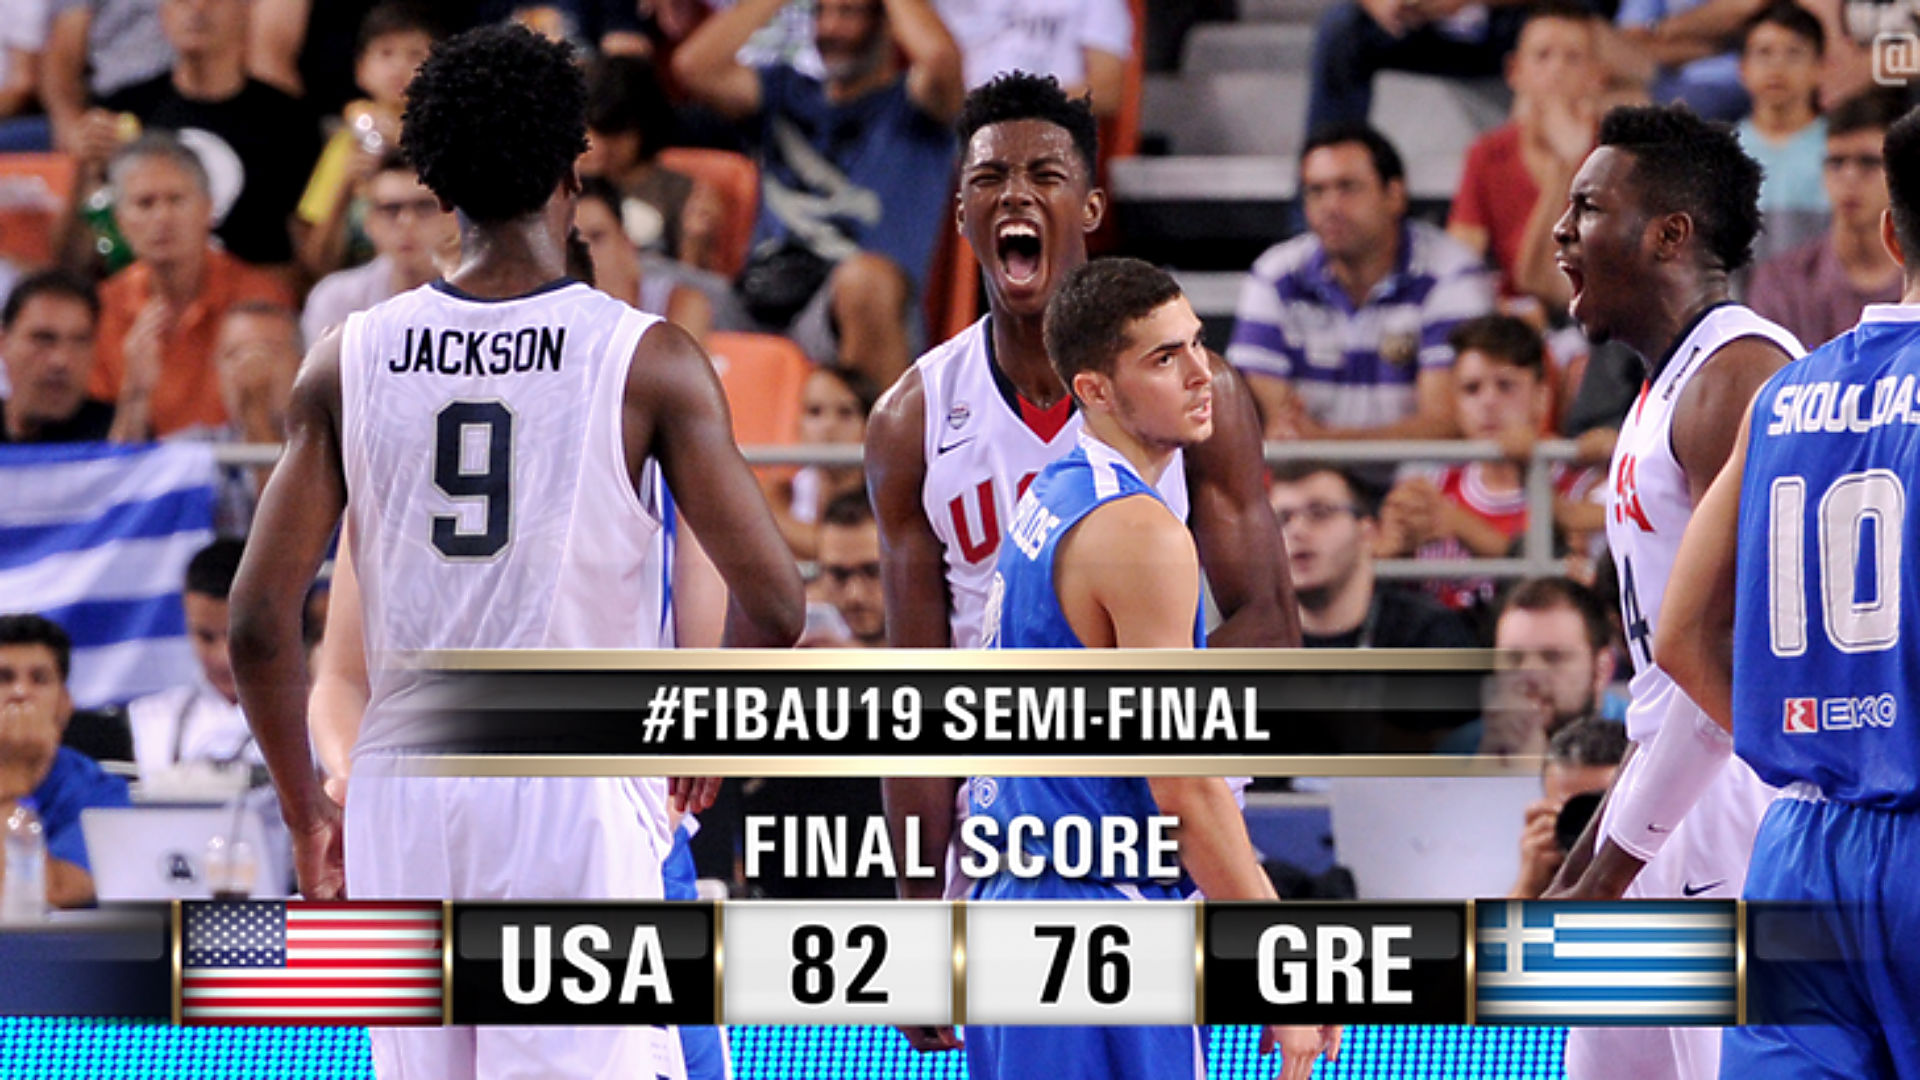 USA defeats Greece in FIBA U-19 semifinals